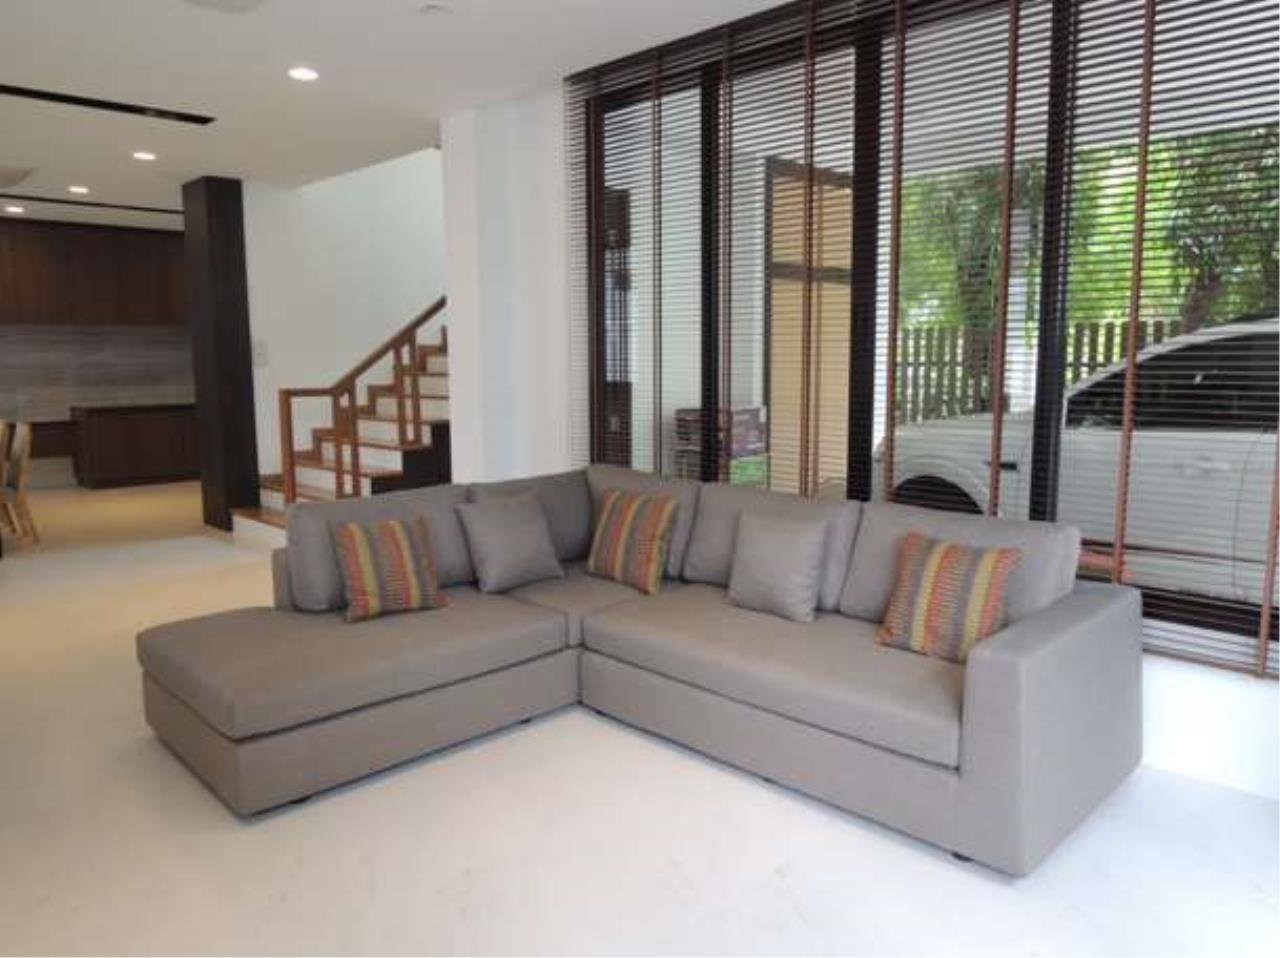 Right Move Thailand Agency's HR423 House For Sale  60,000,000 THB  - 4 Bedrooms - 315 sqm. 1